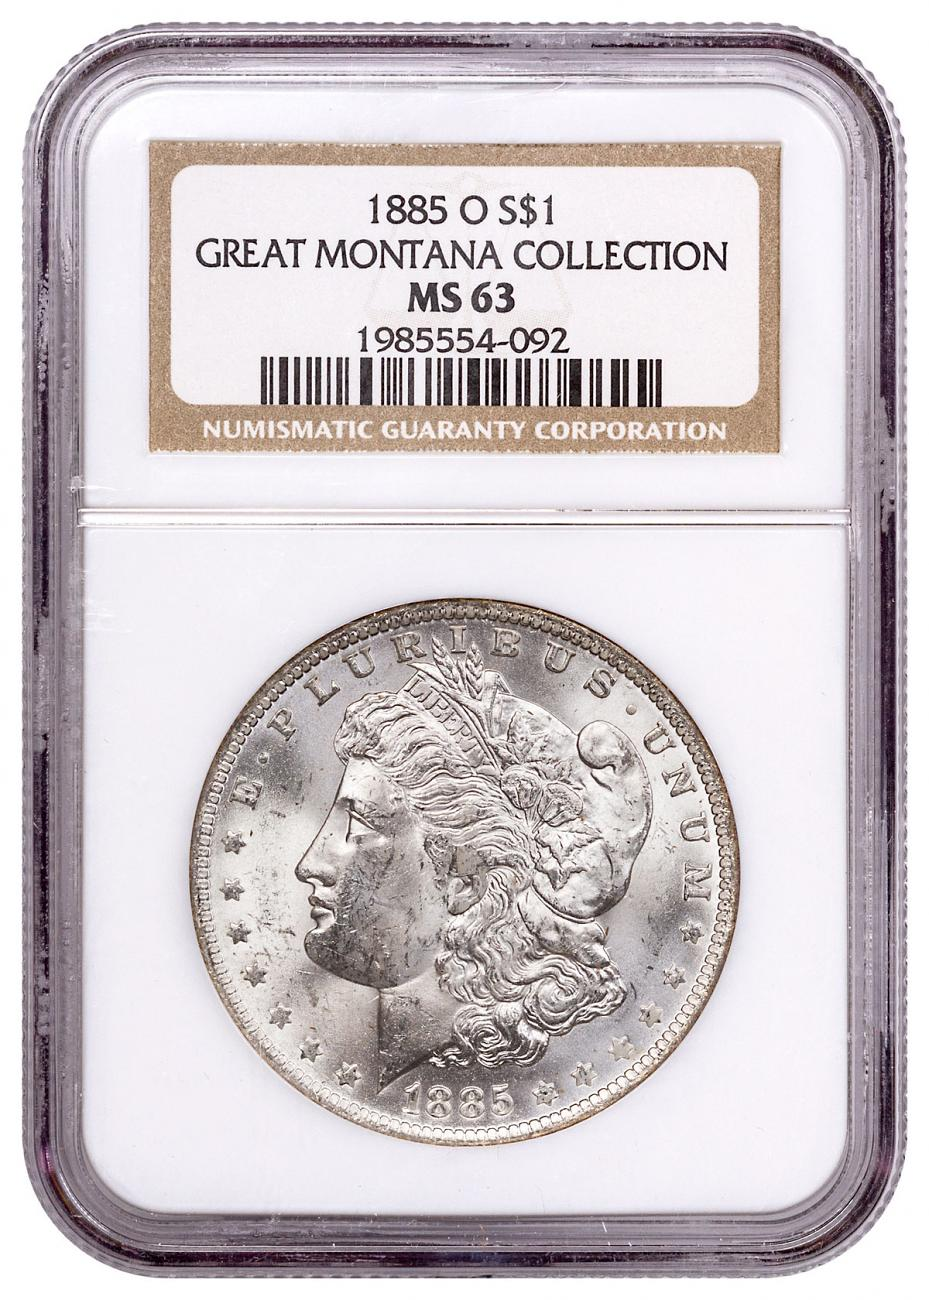 1885-O Morgan Silver Dollar From the Great Montana Collection NGC MS63 Toned CPCR 4092